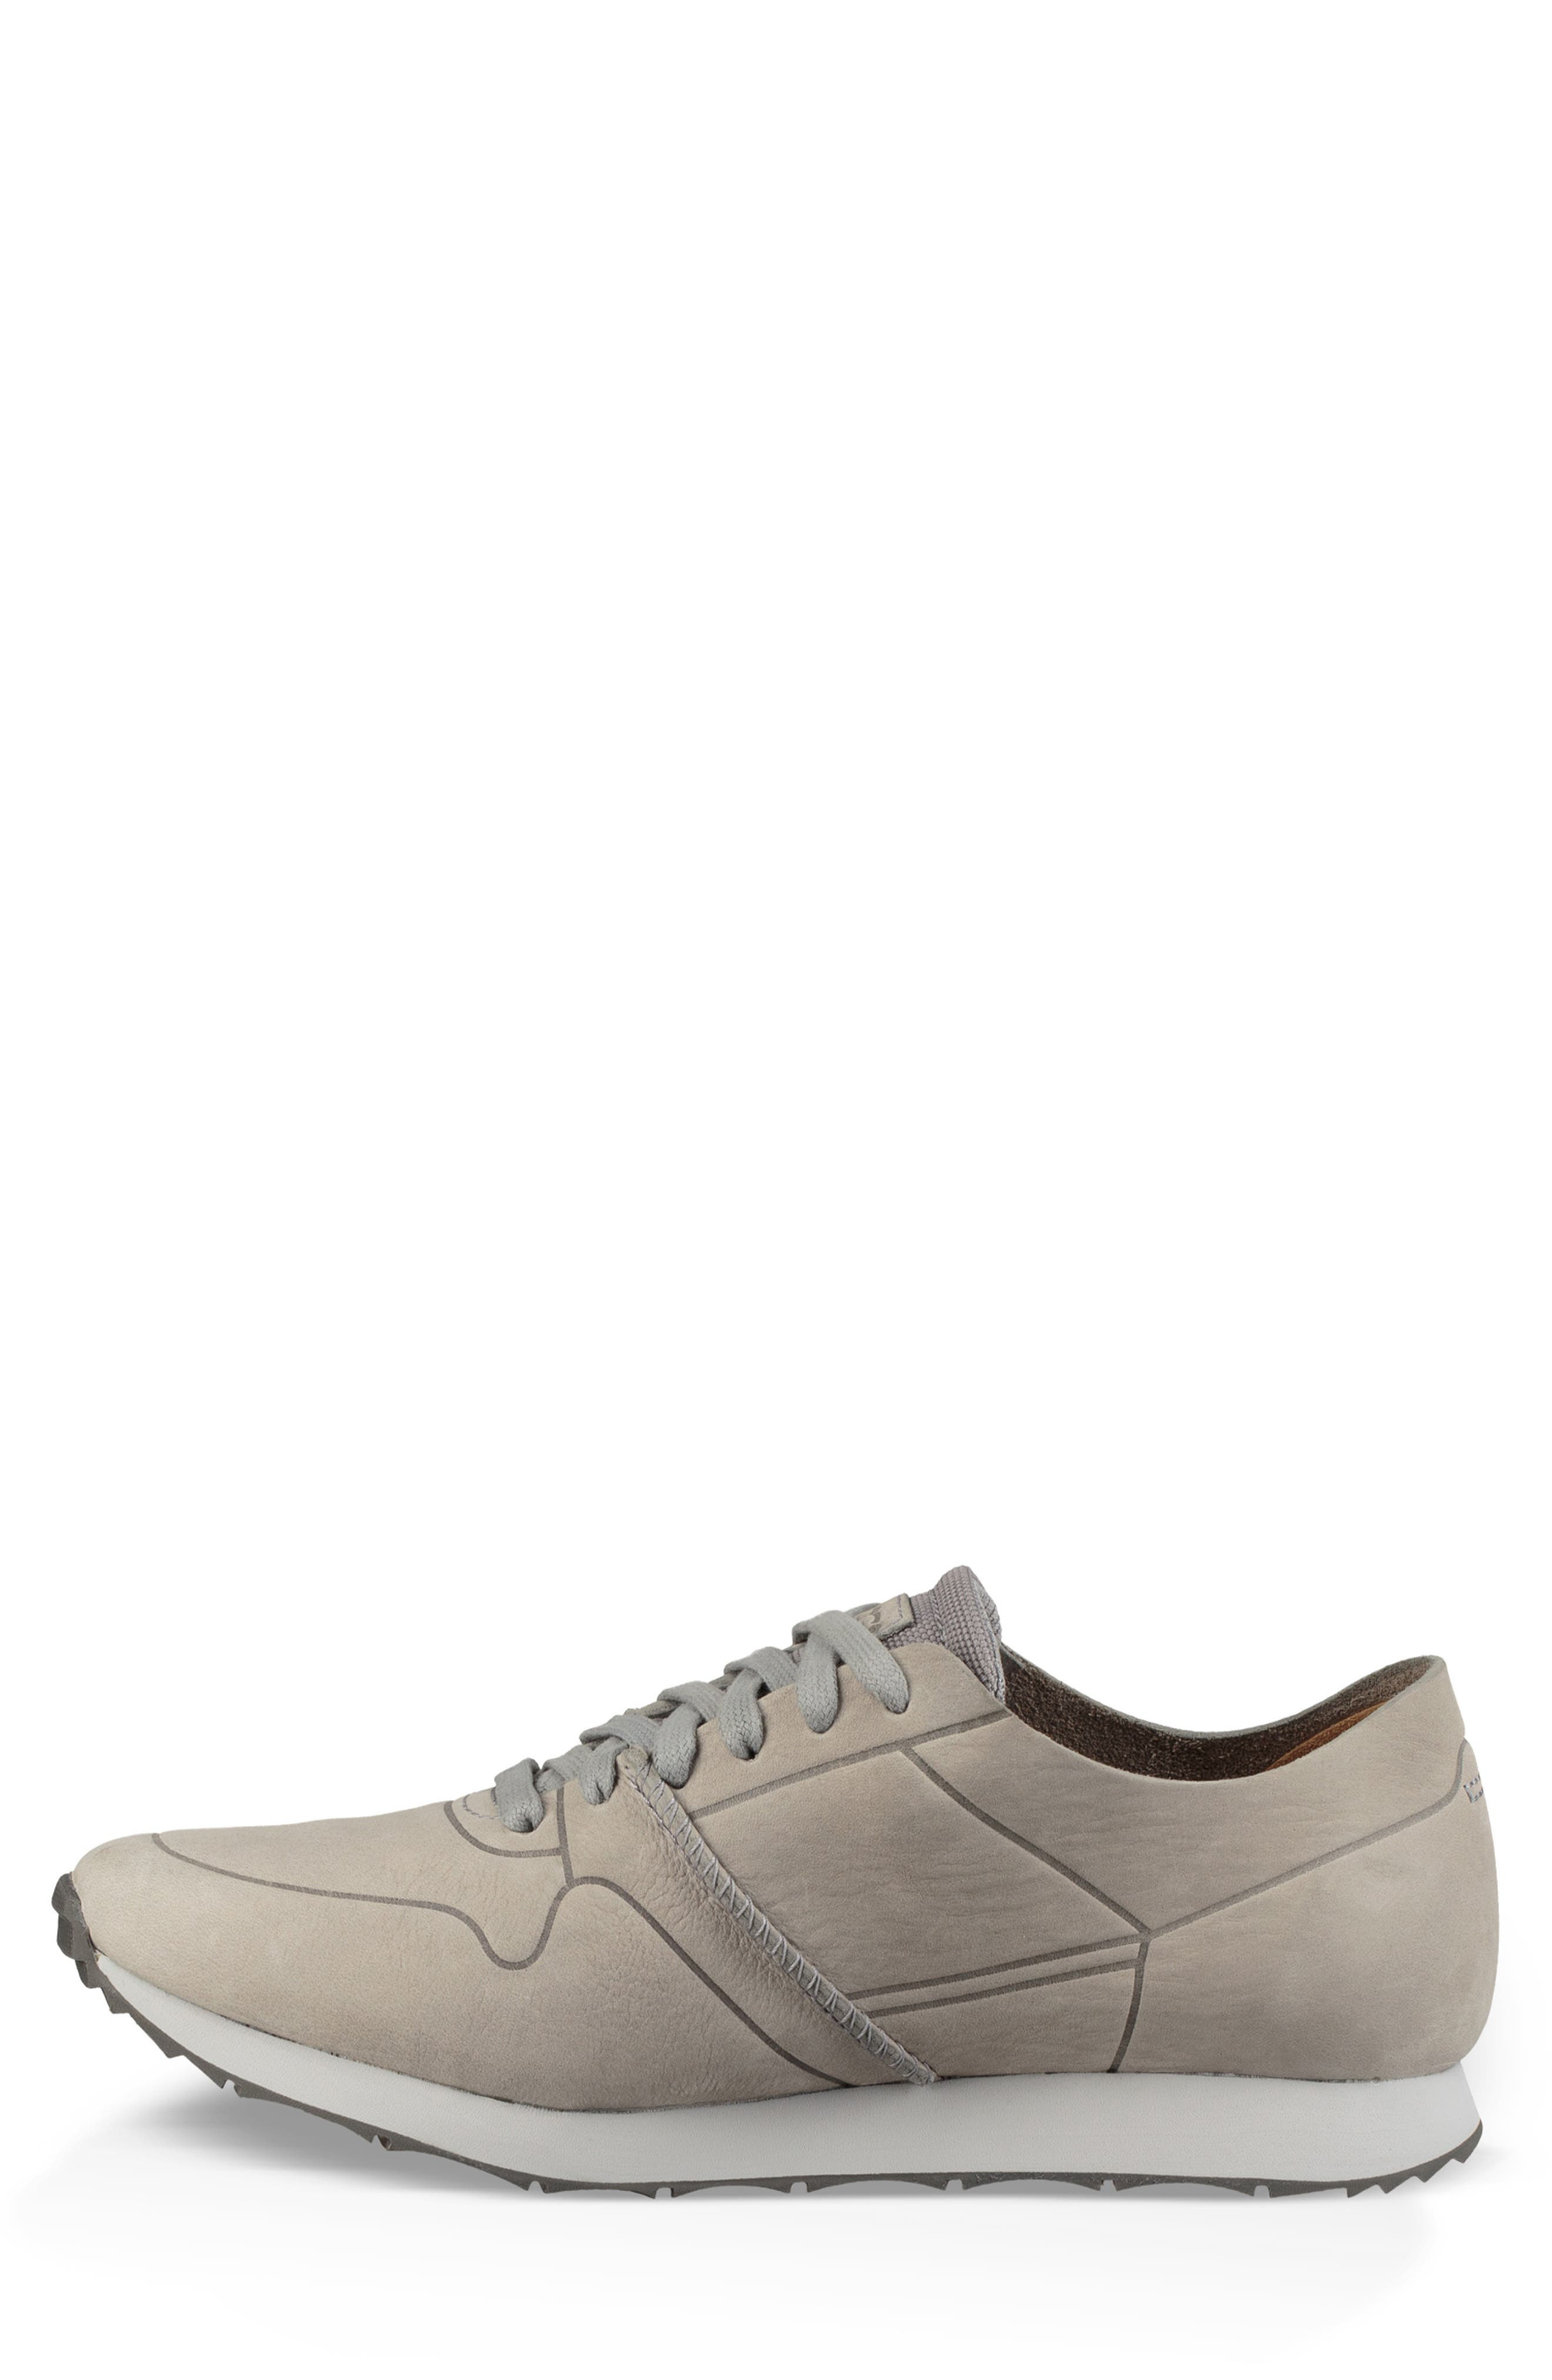 Trigo Unlined Sneaker,                             Alternate thumbnail 3, color,                             024